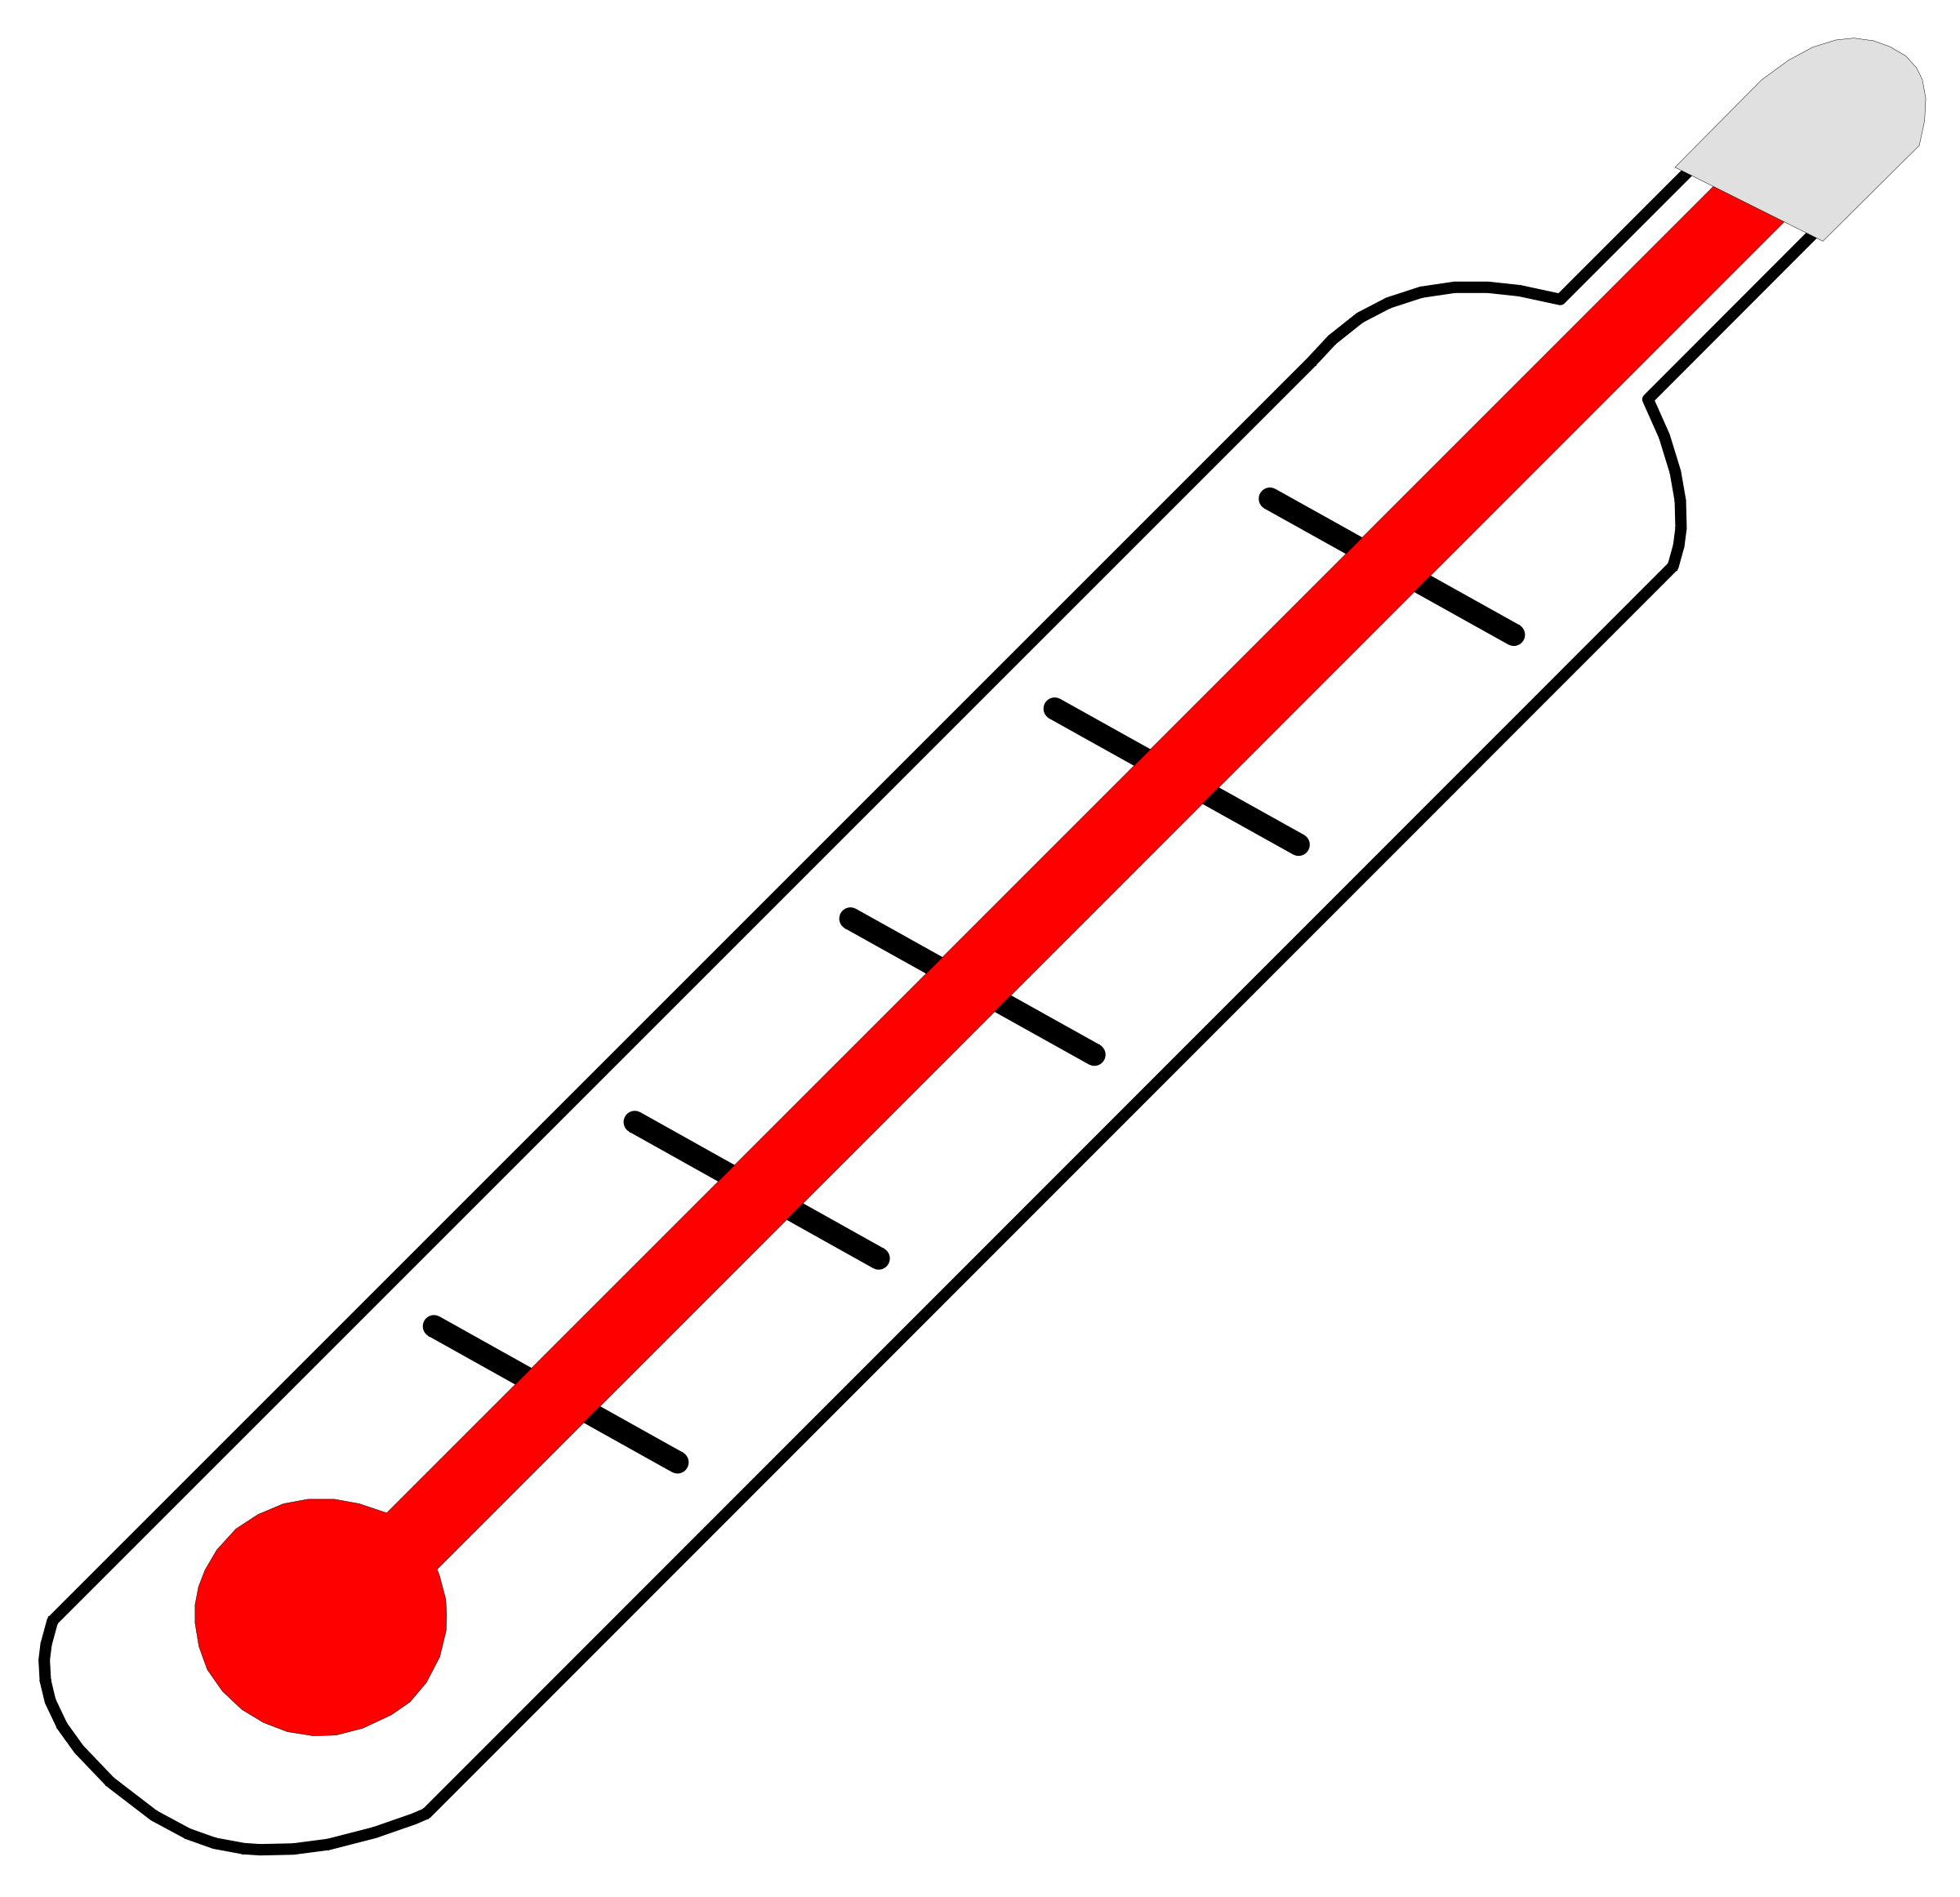 2400x2323 Mercury Thermometer Clip Art